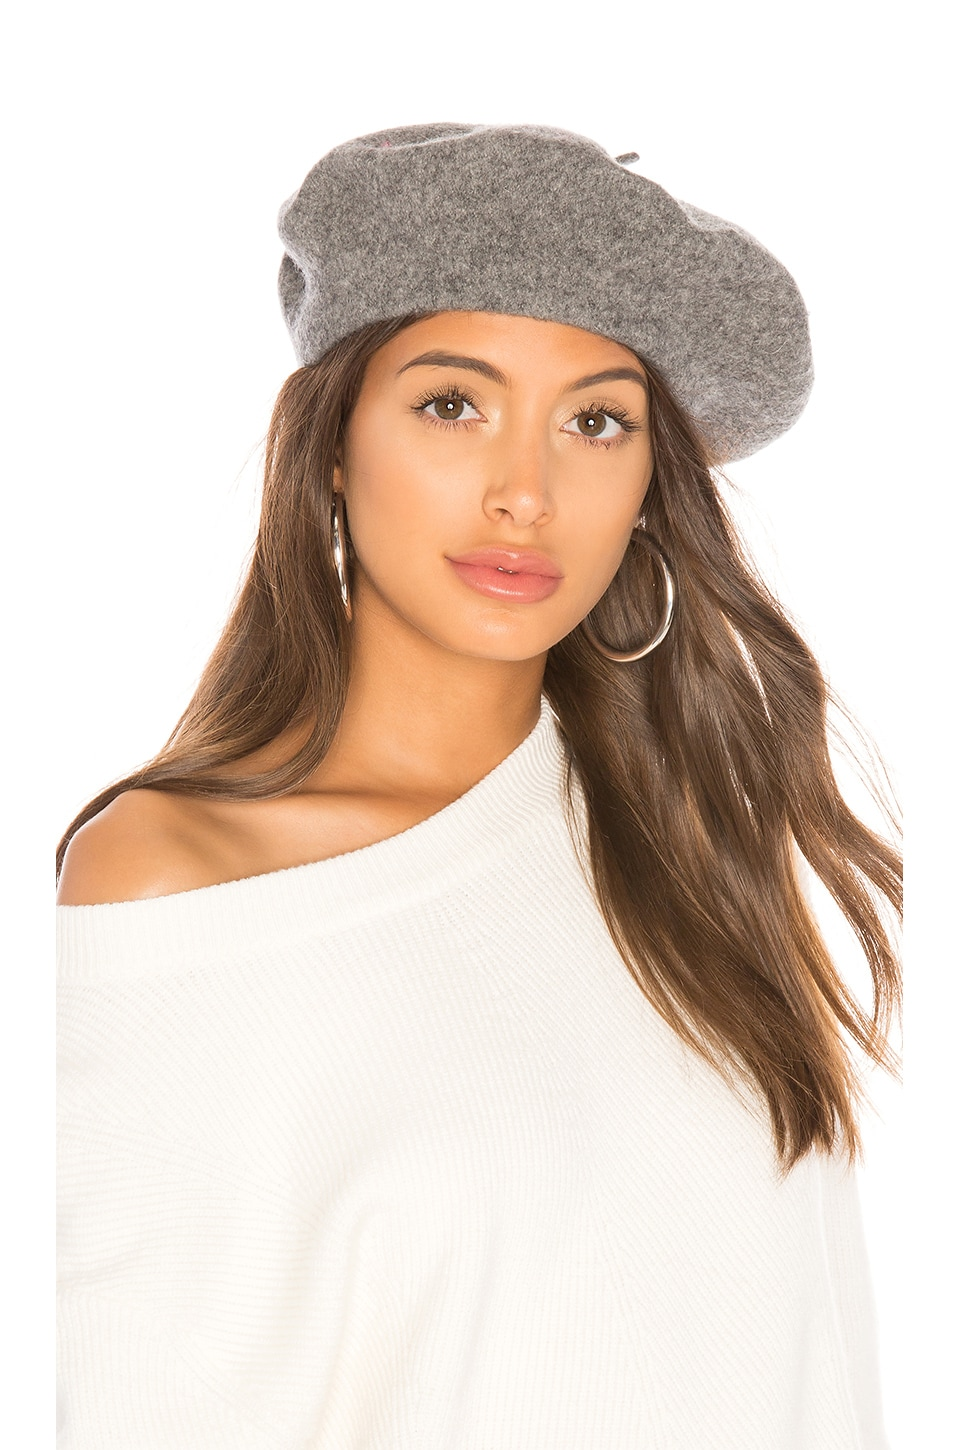 Hat Attack Wool Beret in Charcoal